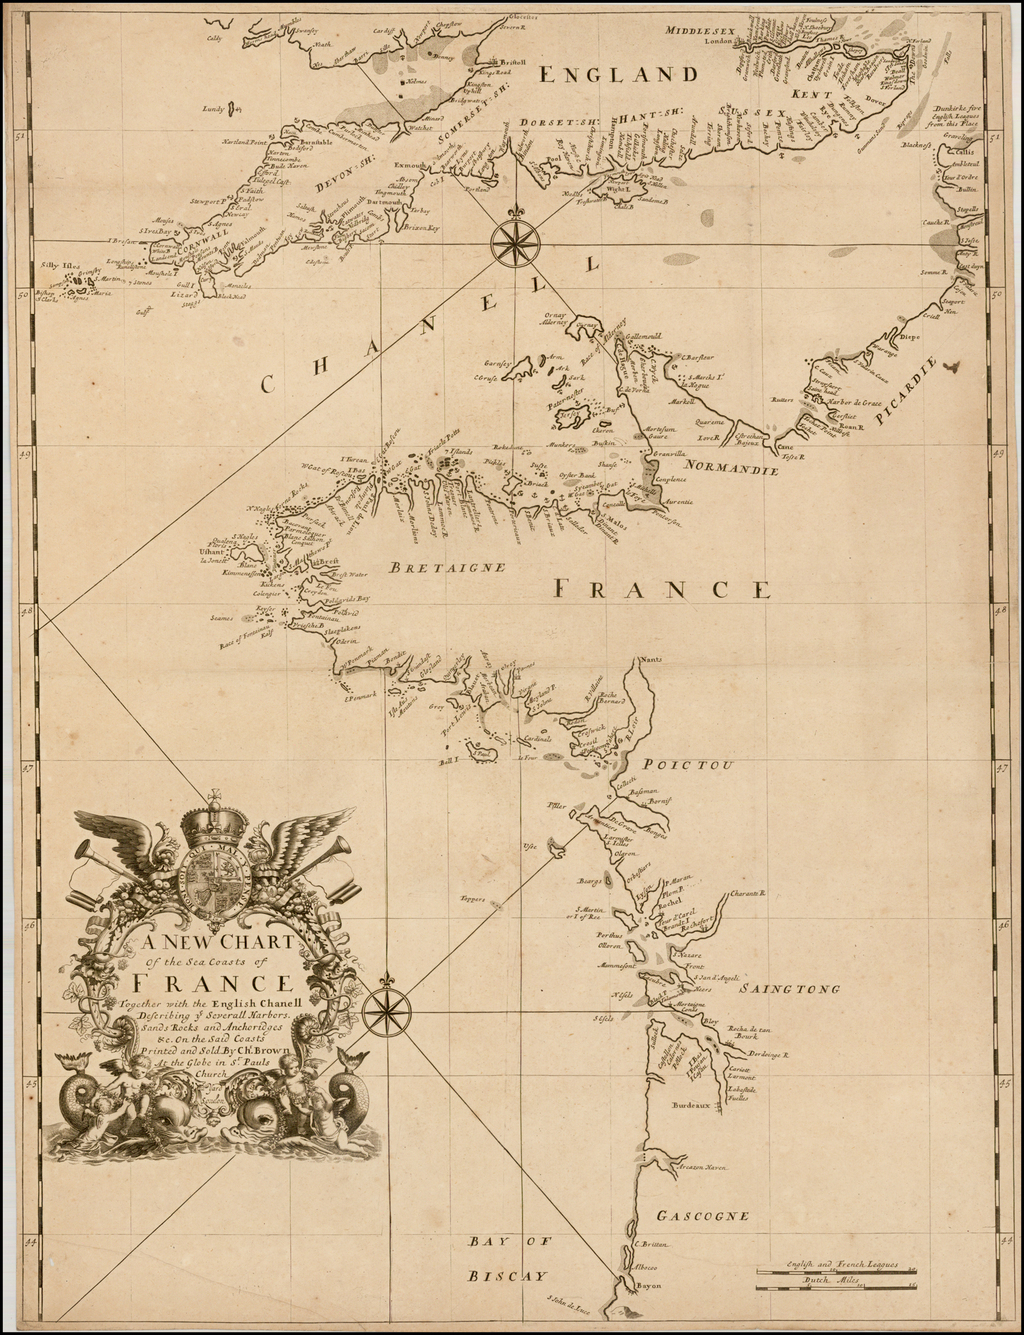 A New Chart of the Sea Coasts of France Together with the English Chanell Describing ye Severall Harbors. Sands Rocks and Anchoridges &c. ON the Said Coasts Printed and Sold By Chr. Brown At the Globe in St. Pauls Church Yard. By Christopher Browne